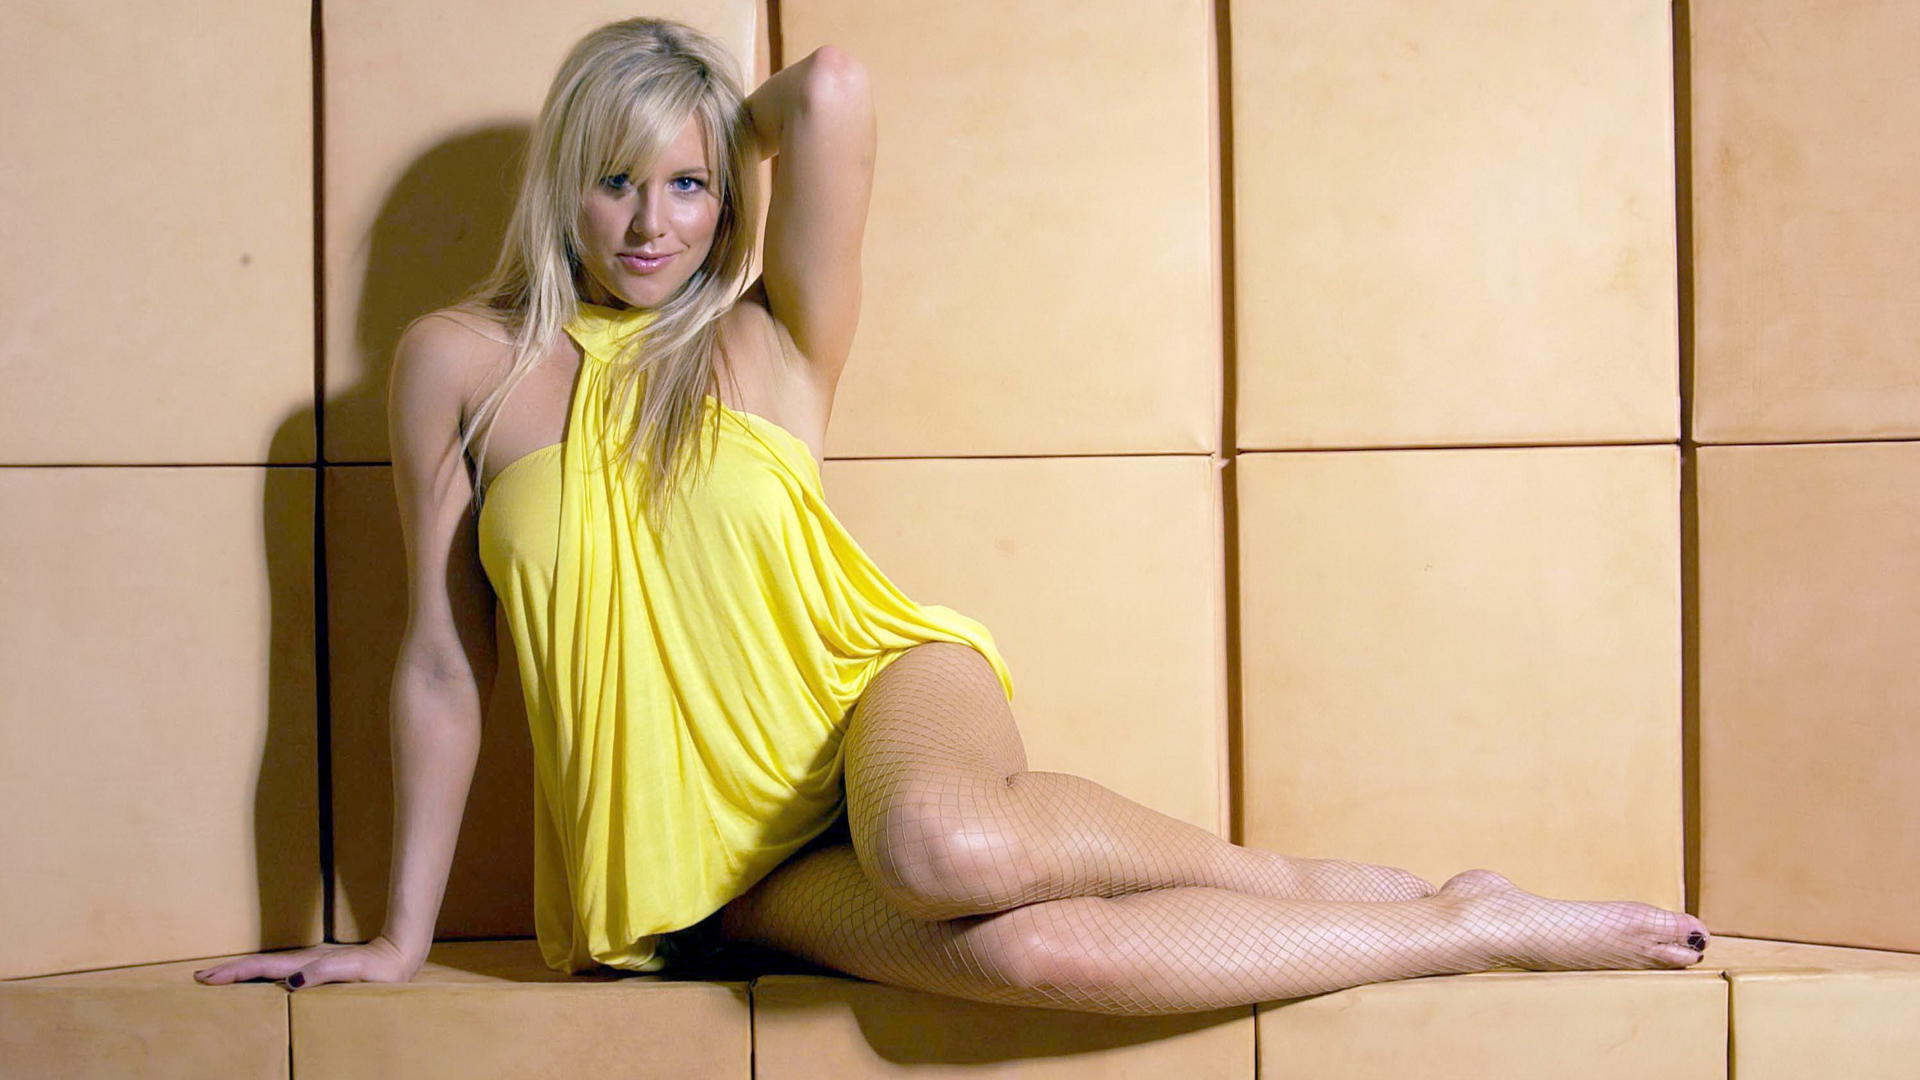 download photo 1920x1080 blonde sexy girl sexy dress